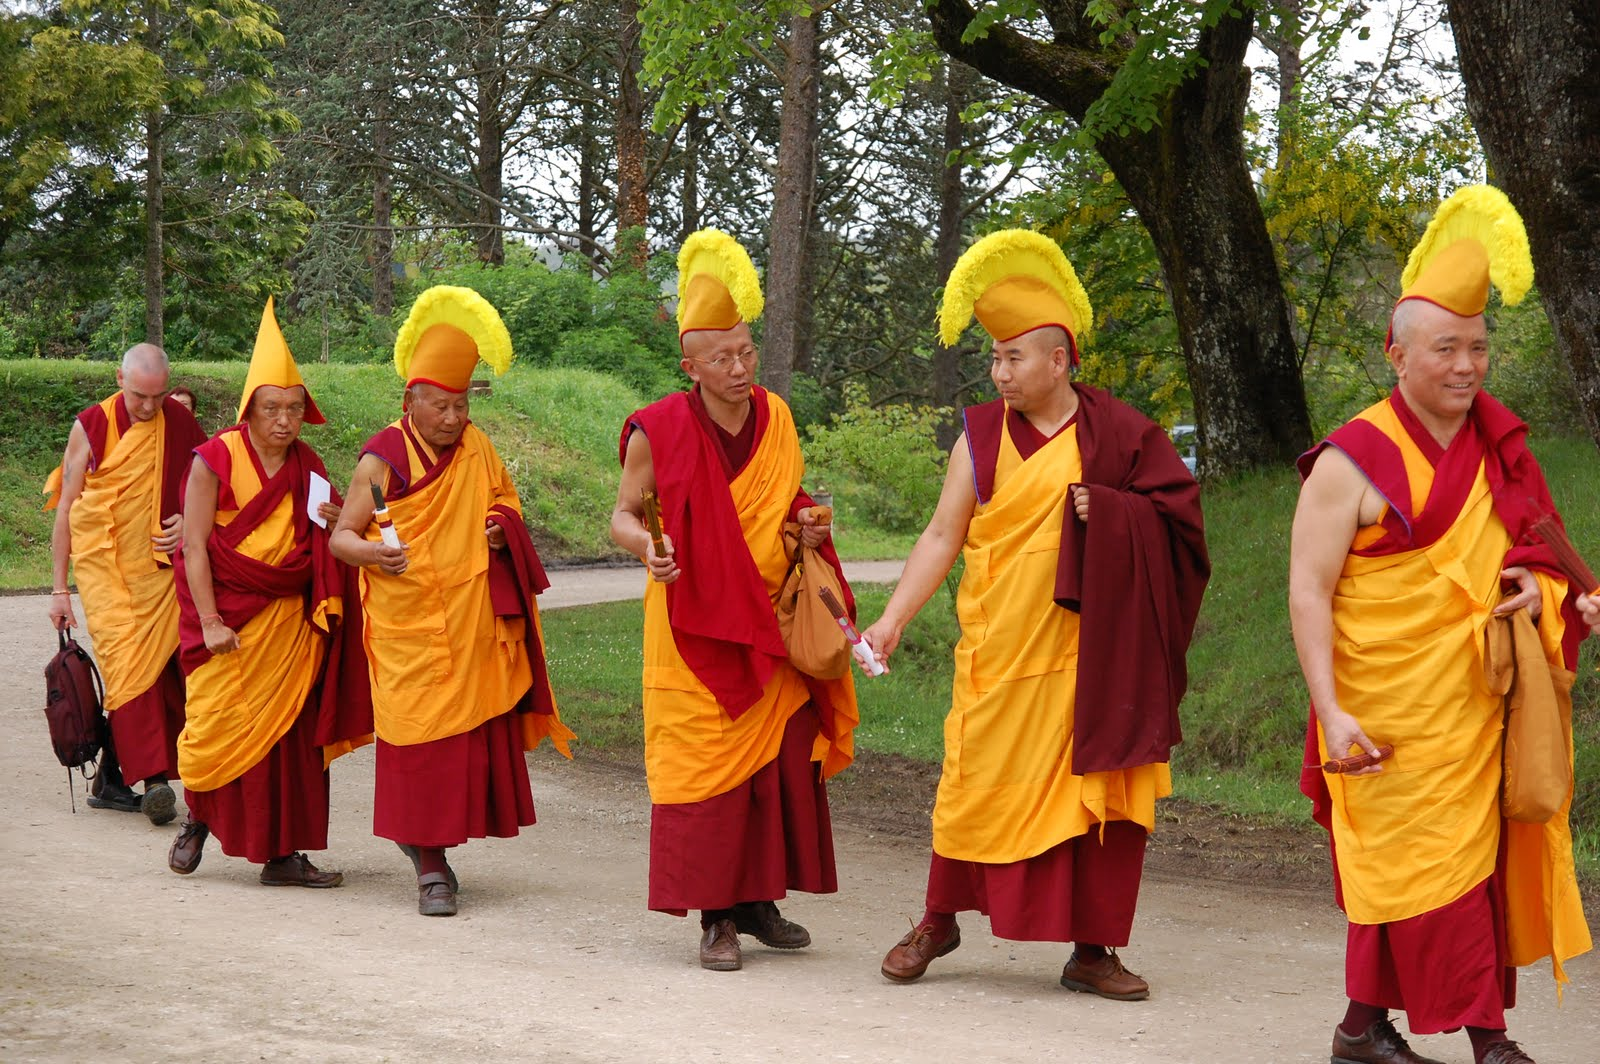 Procession with Geshes for long Life puja offered to Lama Zopa Rinpoche after the CPMT Meeting at Institut Vajra Yogini, France, May 2009.